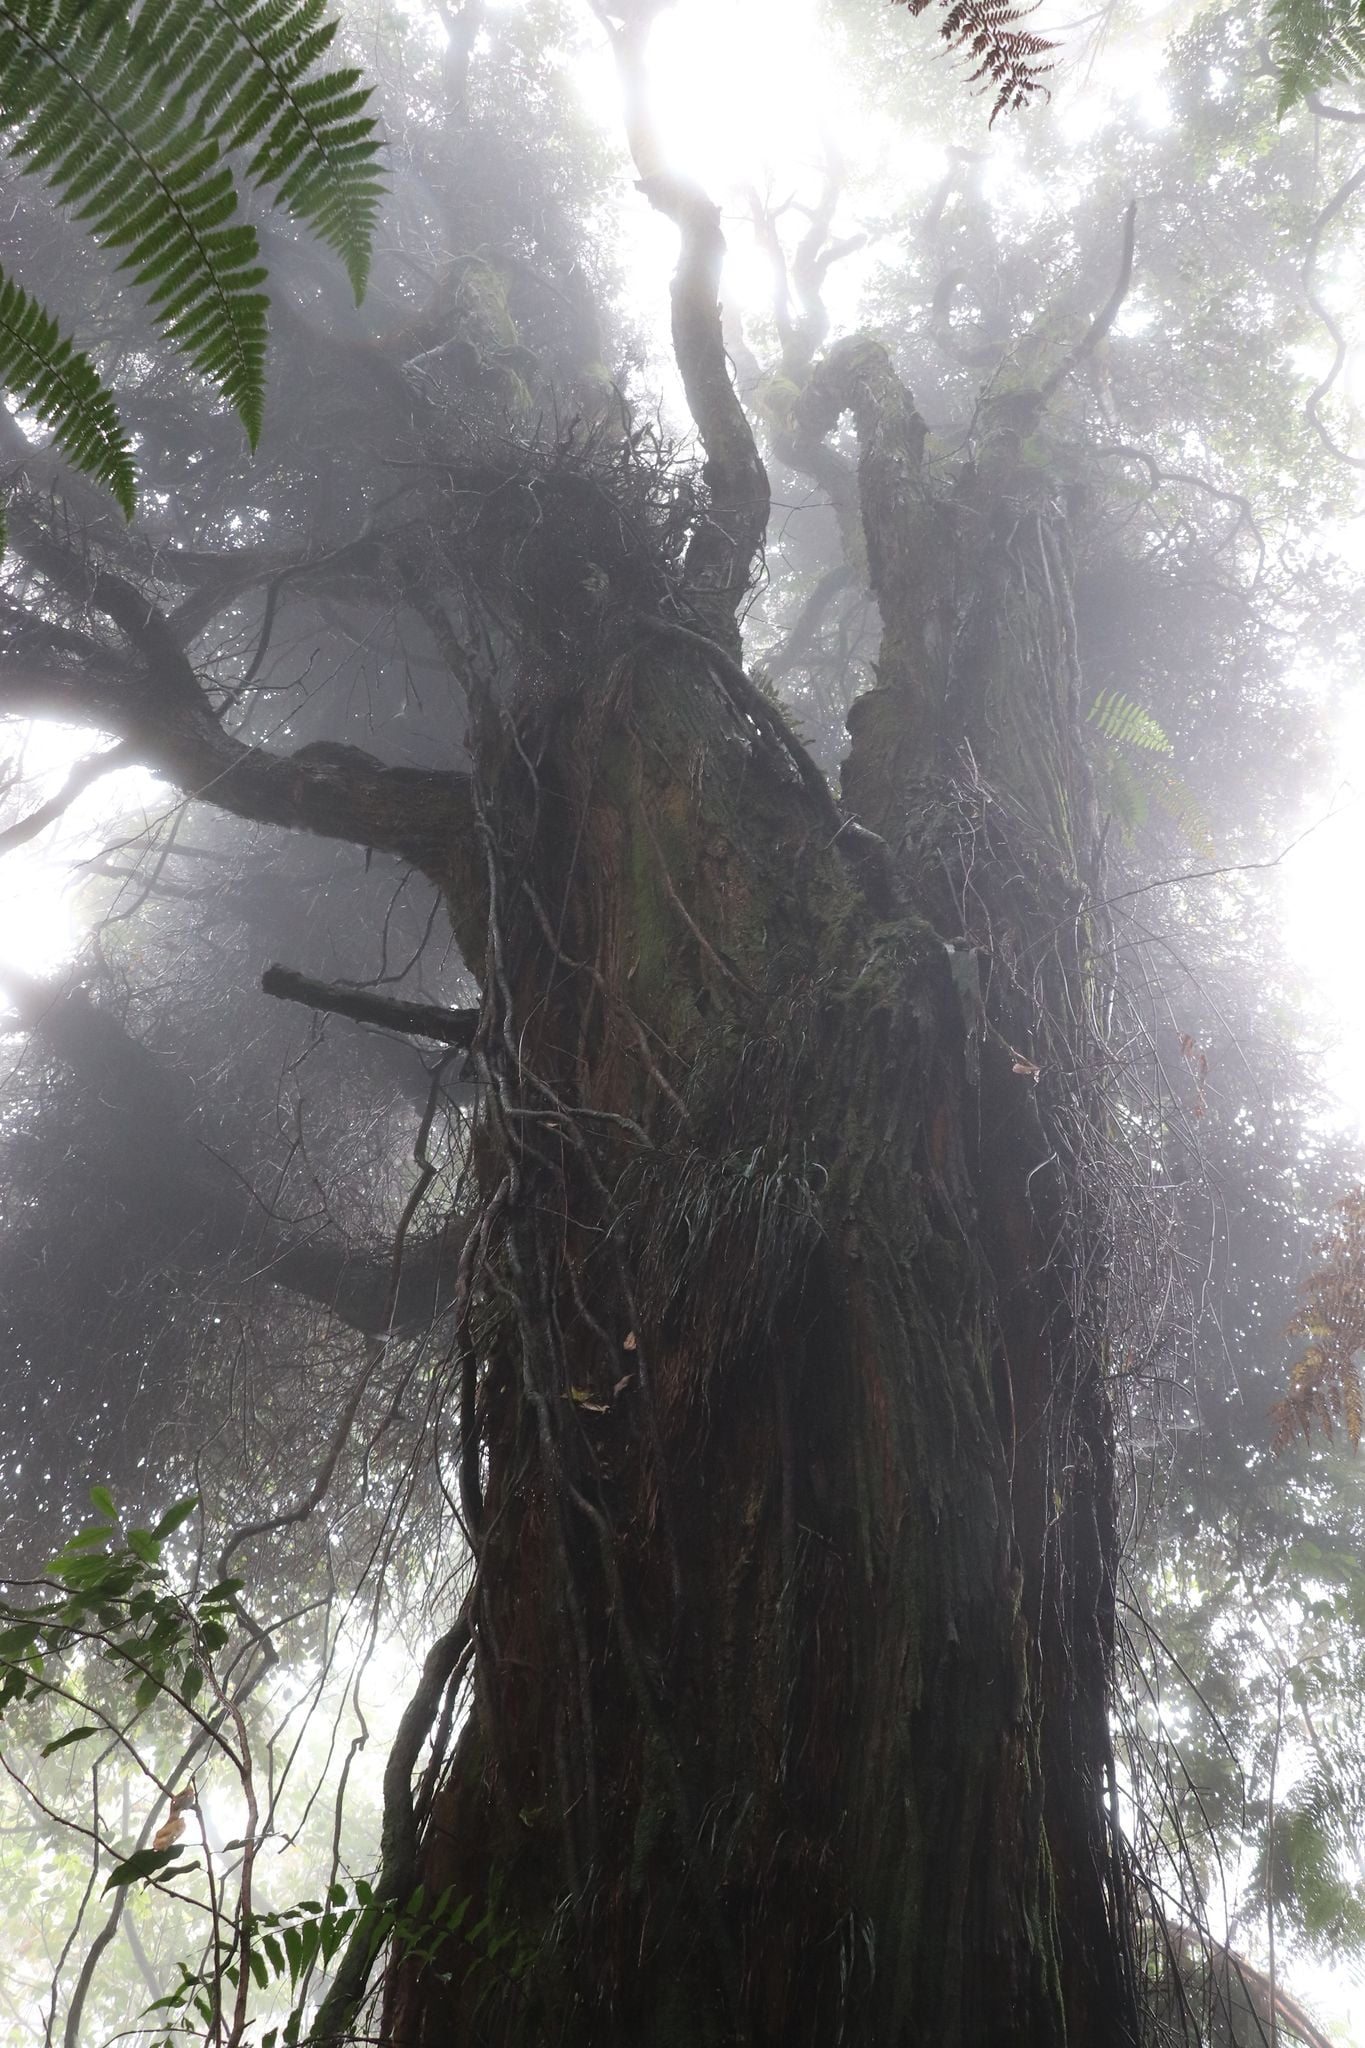 Giant trees along Mt. Apo trails - foggy forest and gigantic tropical tree